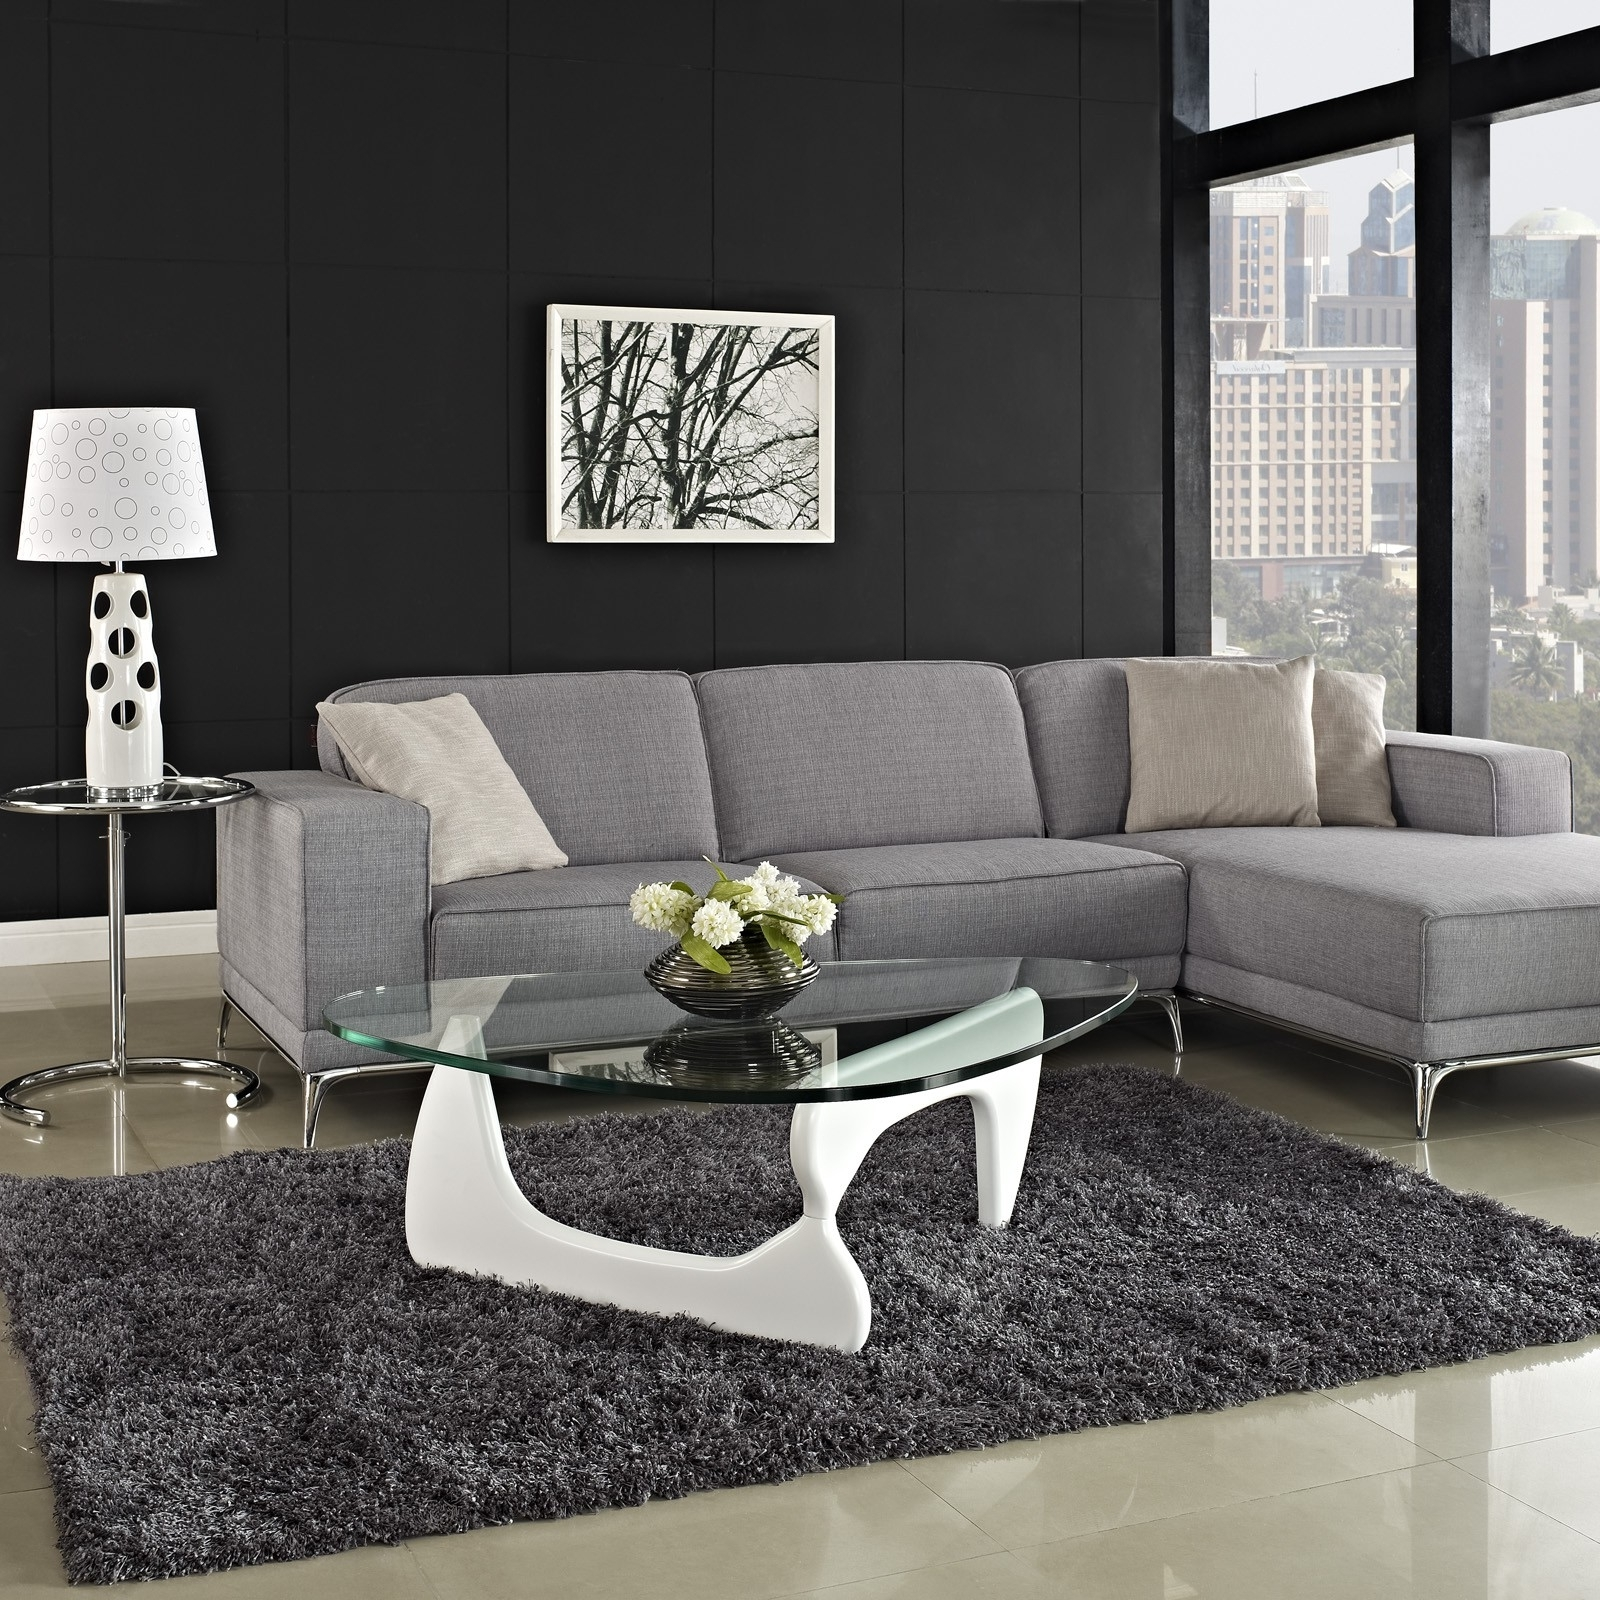 L Shaped Grey Sectional Sofa And White Cushions On Chrome Base Throughout Latest Coffee Tables For Sectional Sofa With Chaise (View 8 of 15)